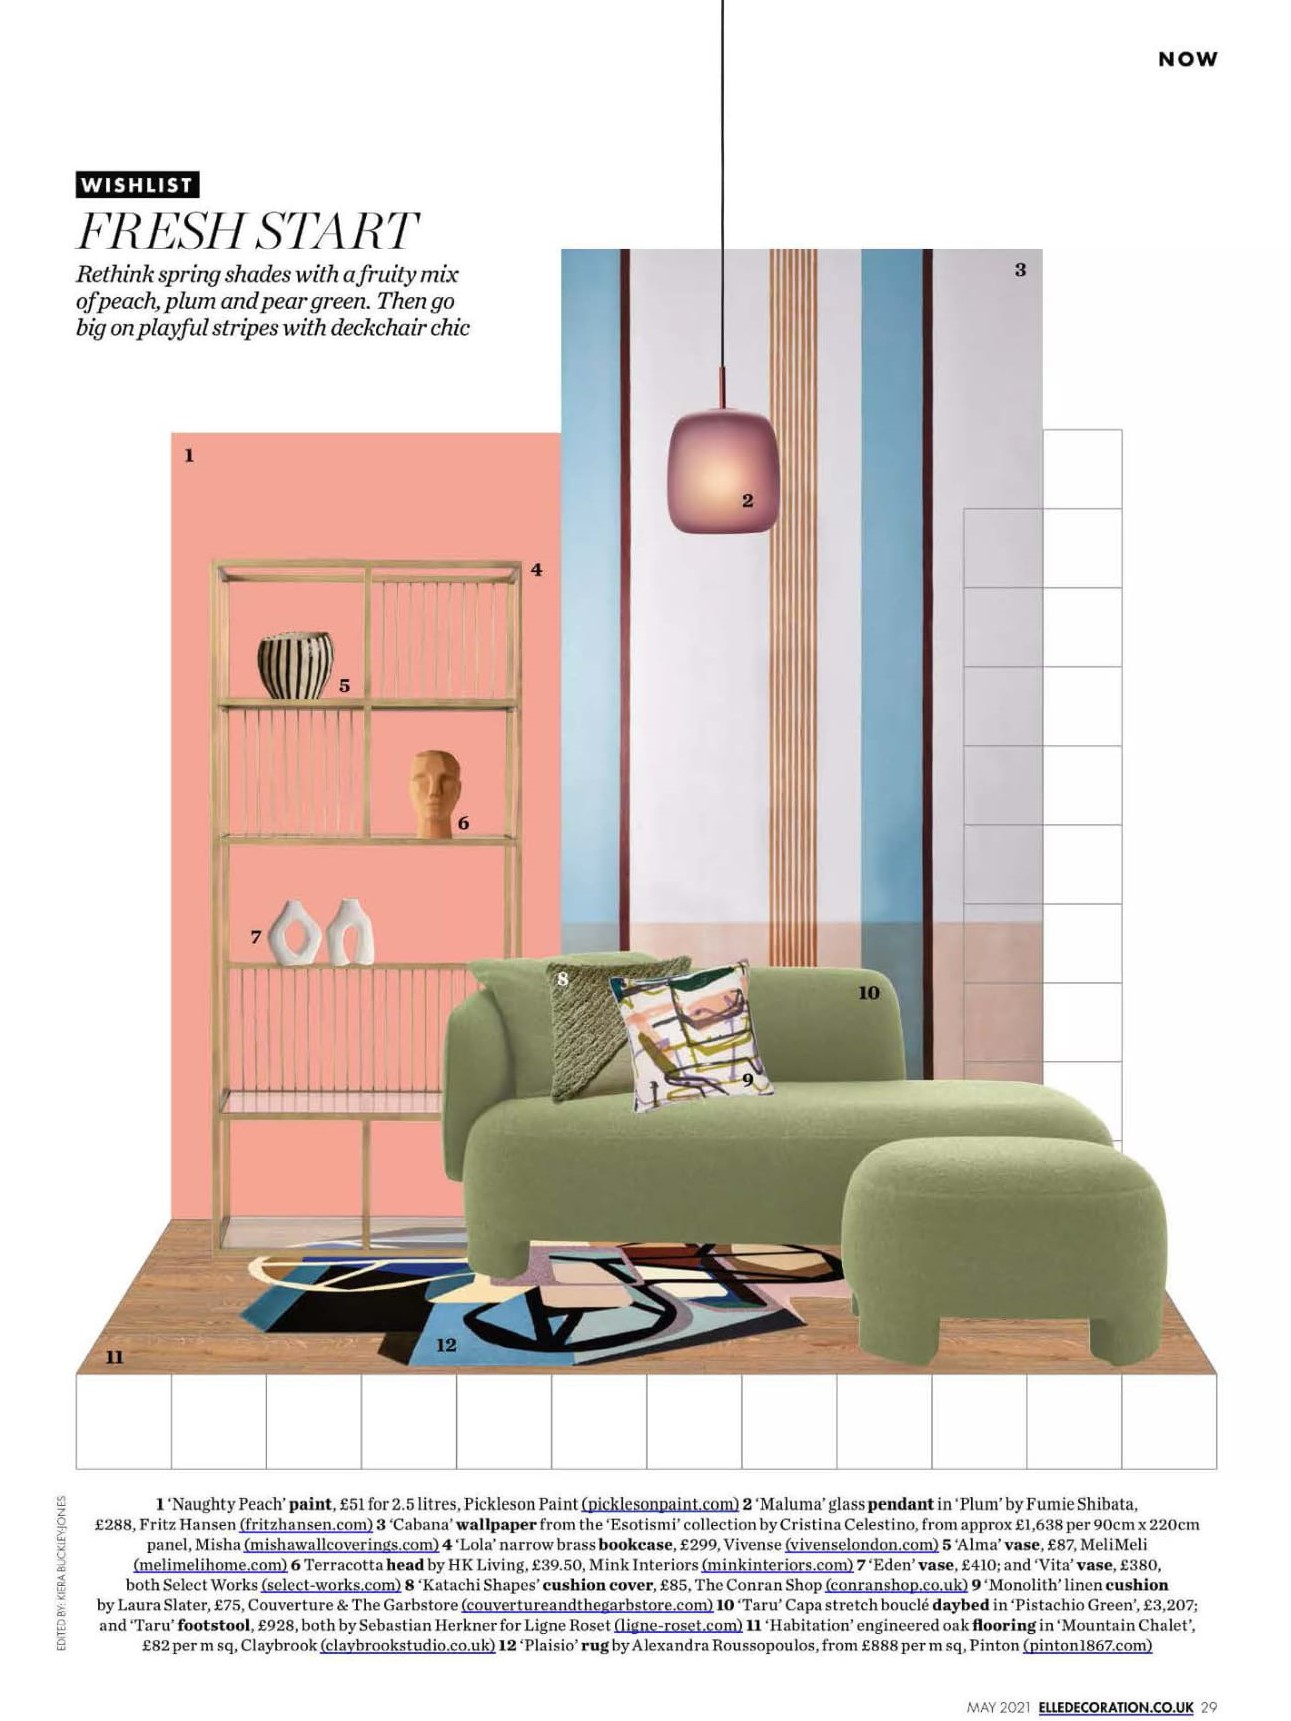 Get a fresh start with Ligne Roset's Taru daybed in pistachio green, says Elle Decoration